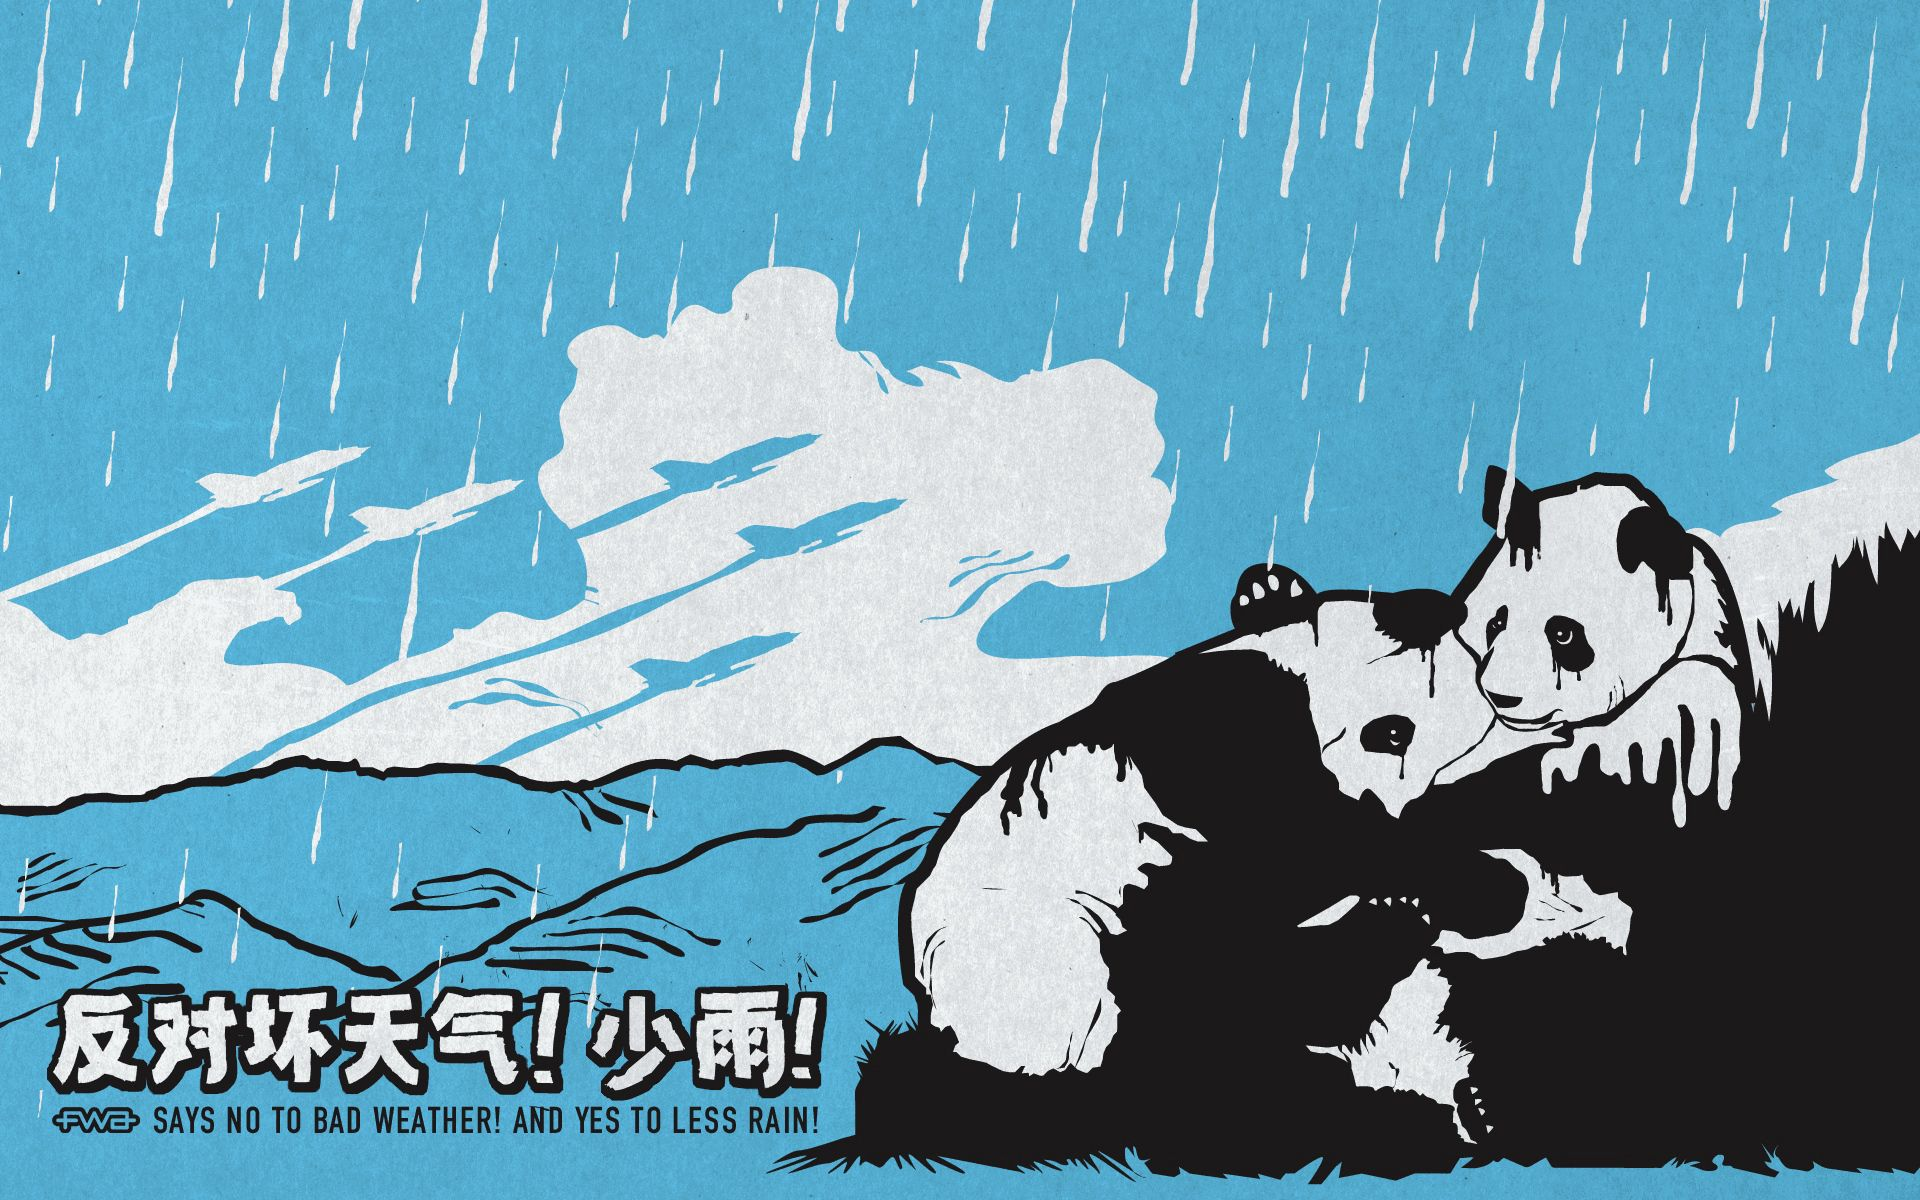 105347 download wallpaper Miscellanea, Miscellaneous, Panda, Couple, Pair, Rain screensavers and pictures for free